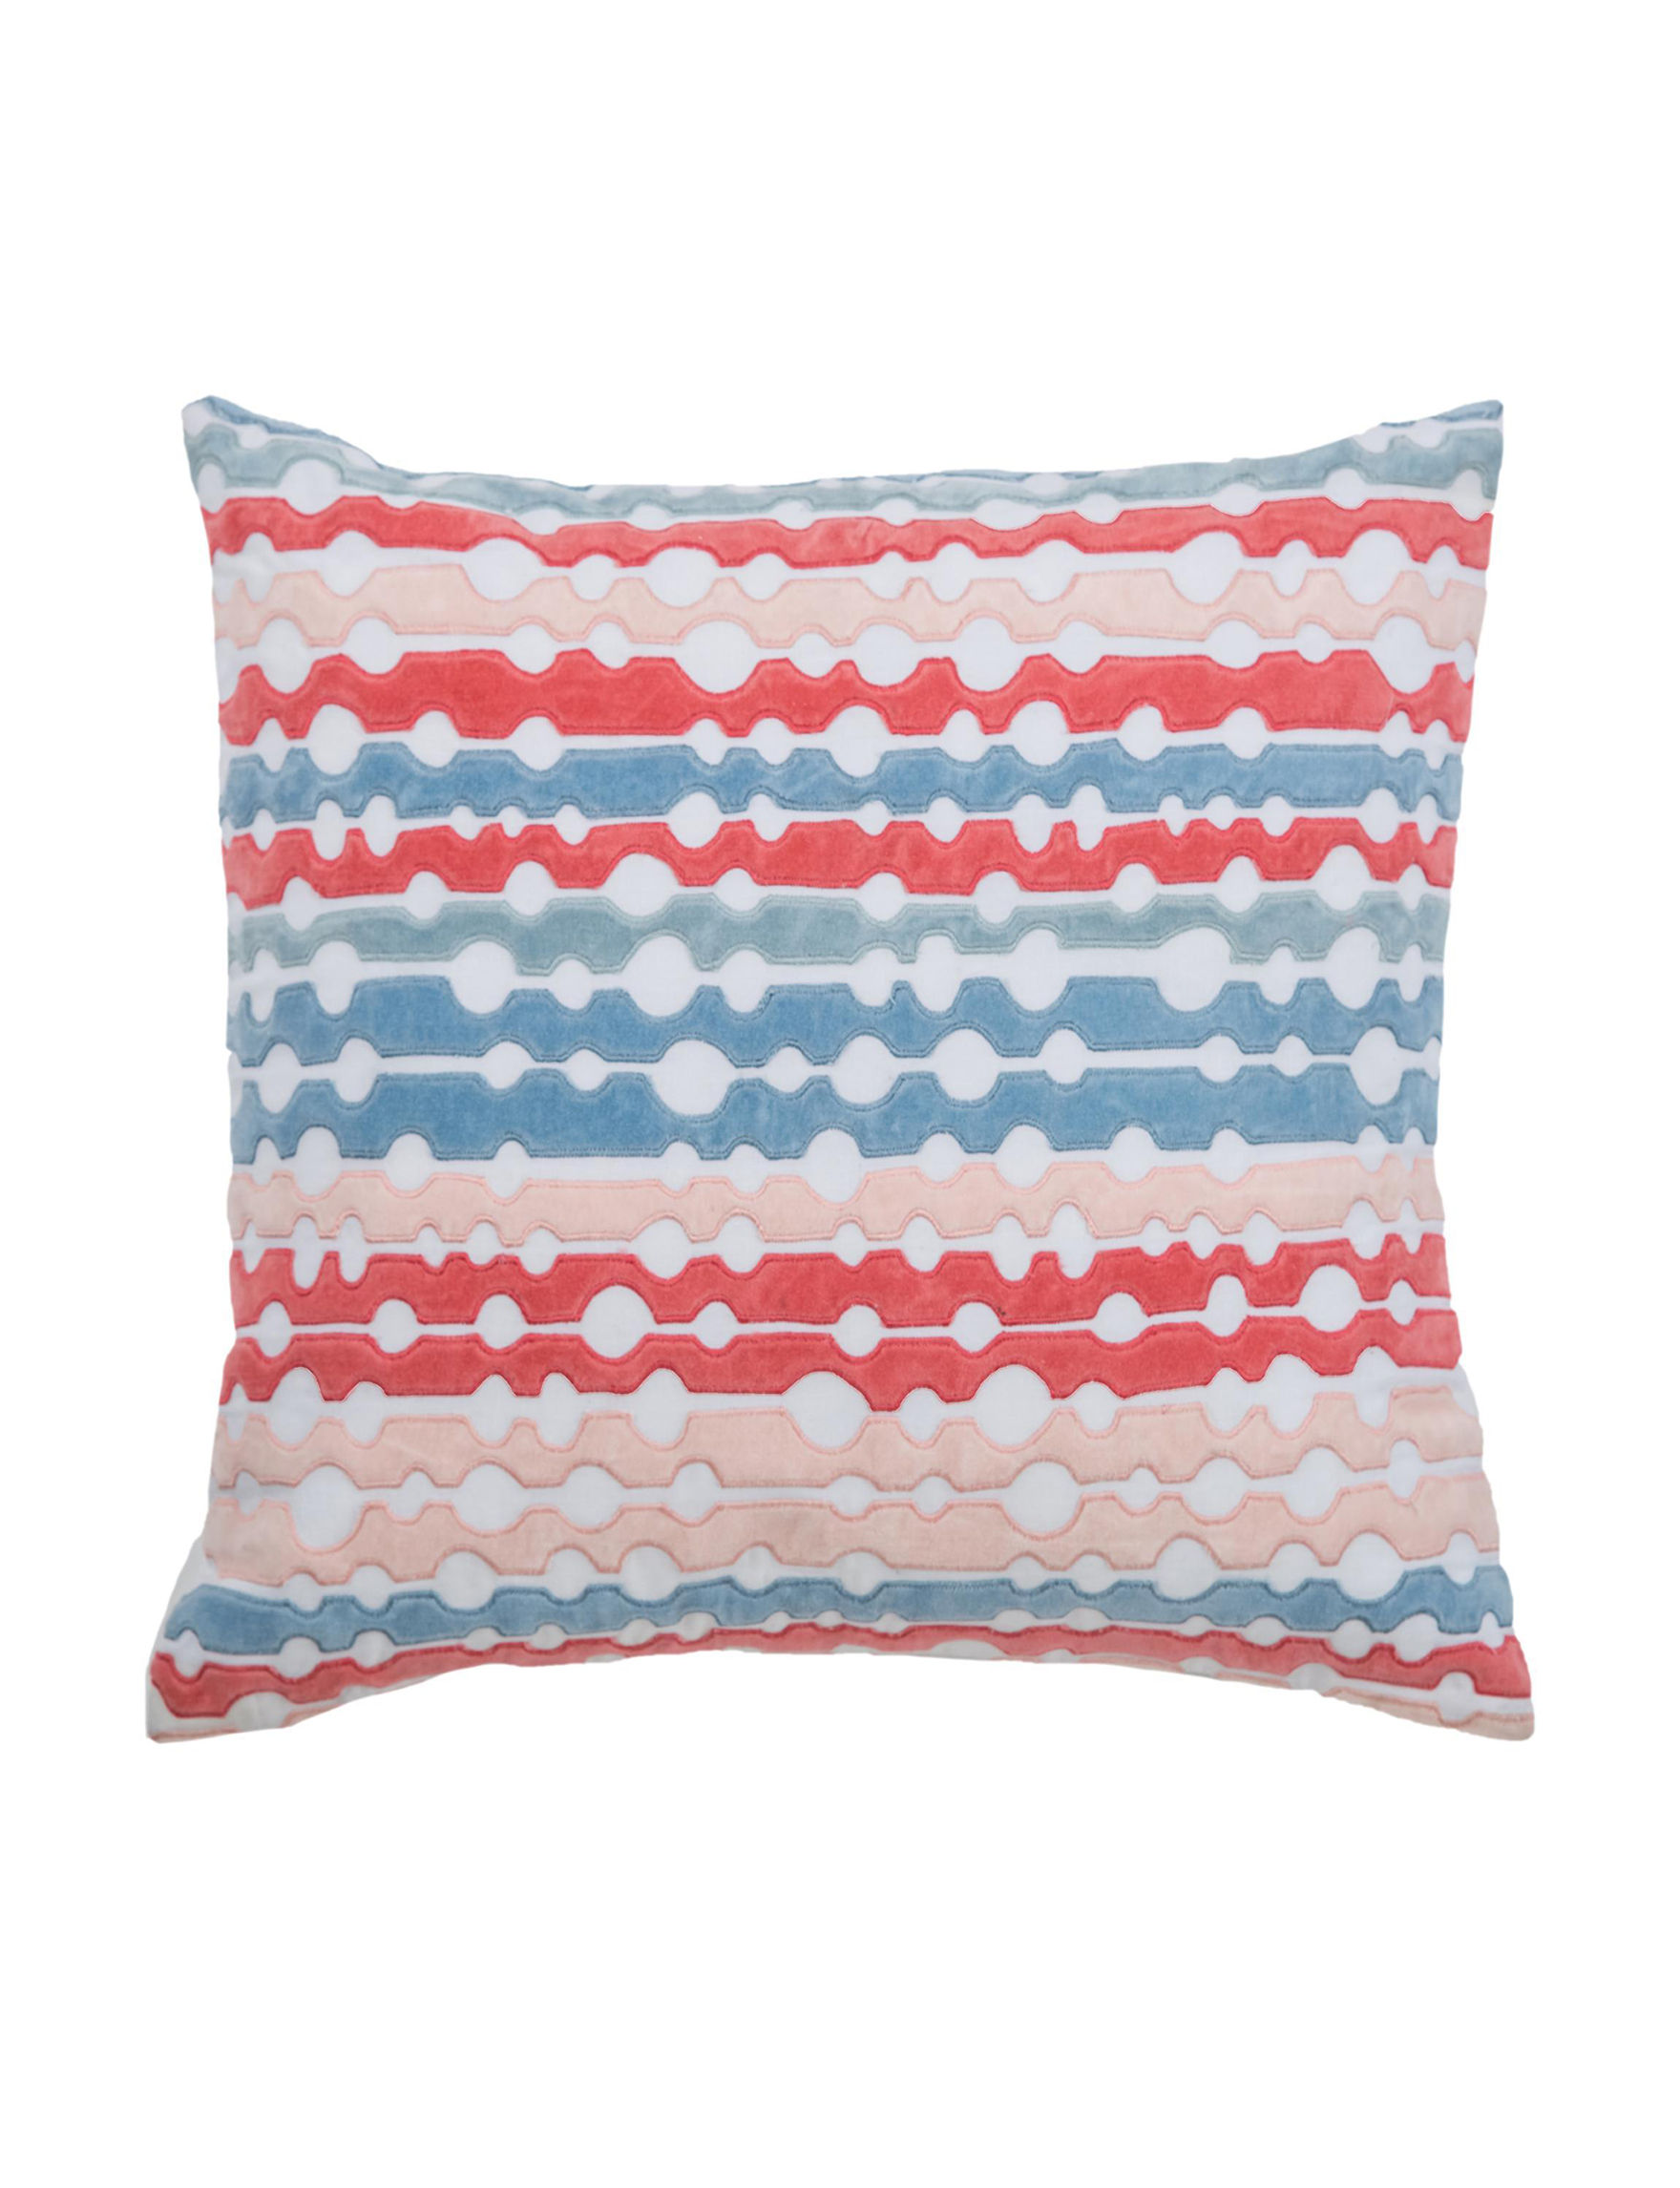 Rizzy Home Red Decorative Pillows